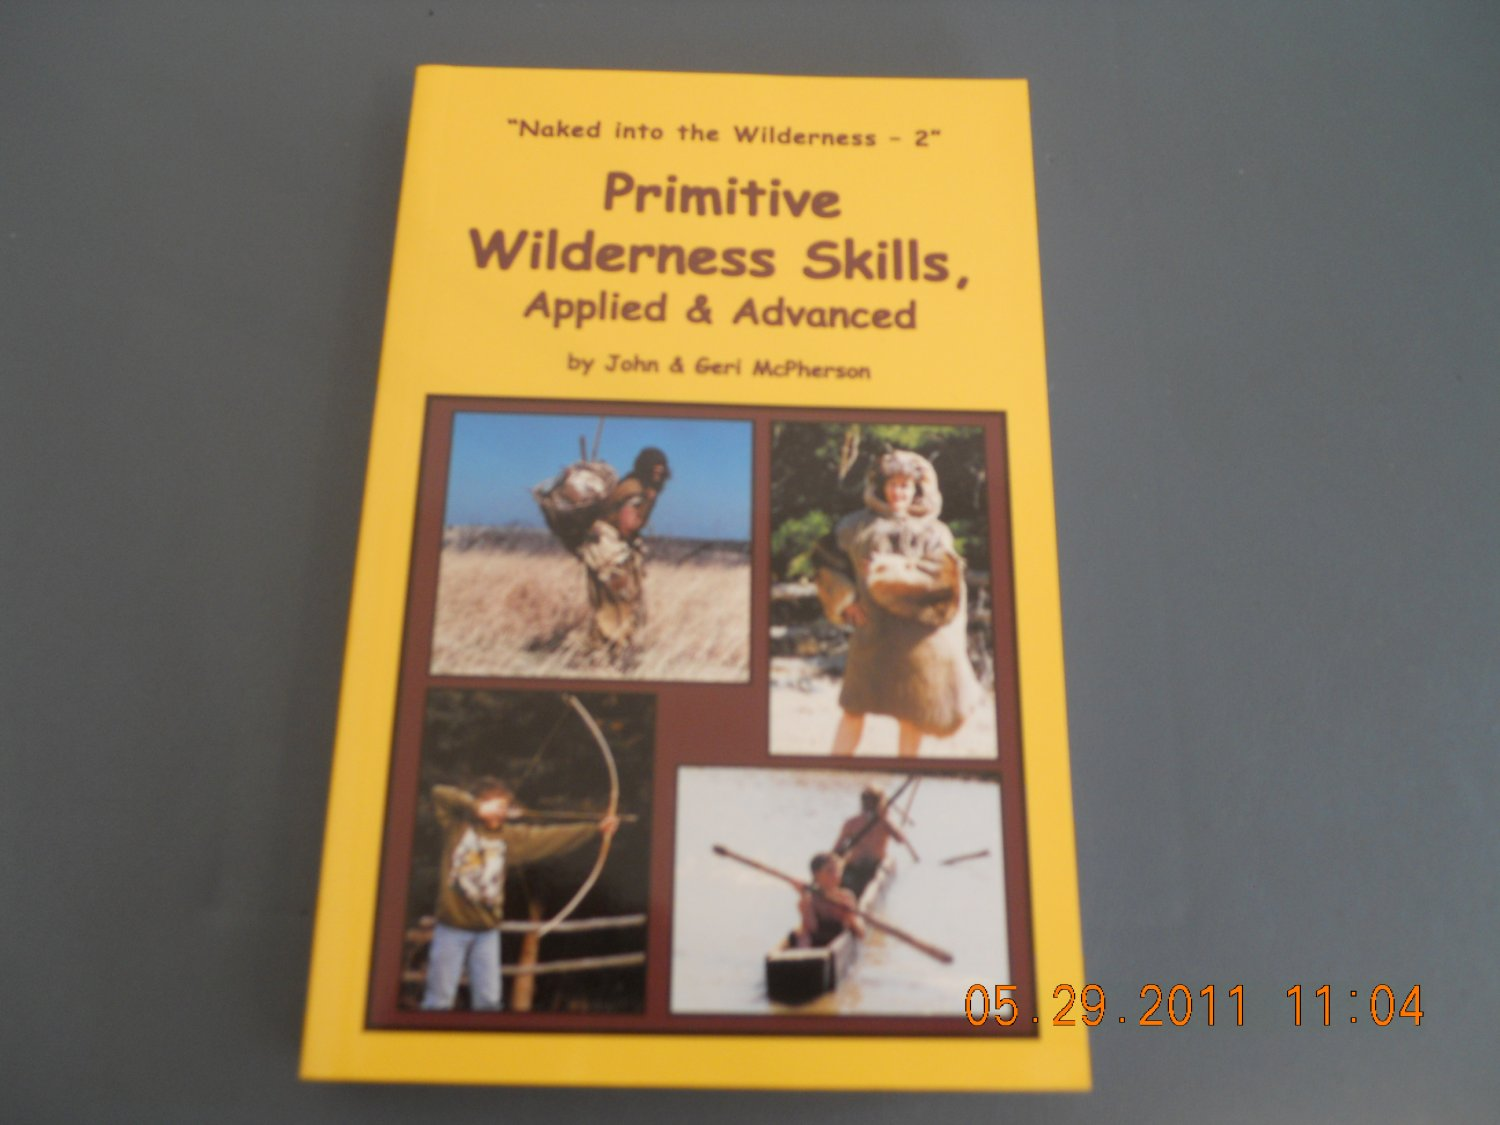 Primitive Wilderness Skills, Applied & Advanced Naked into the Wilderness 2 paperback